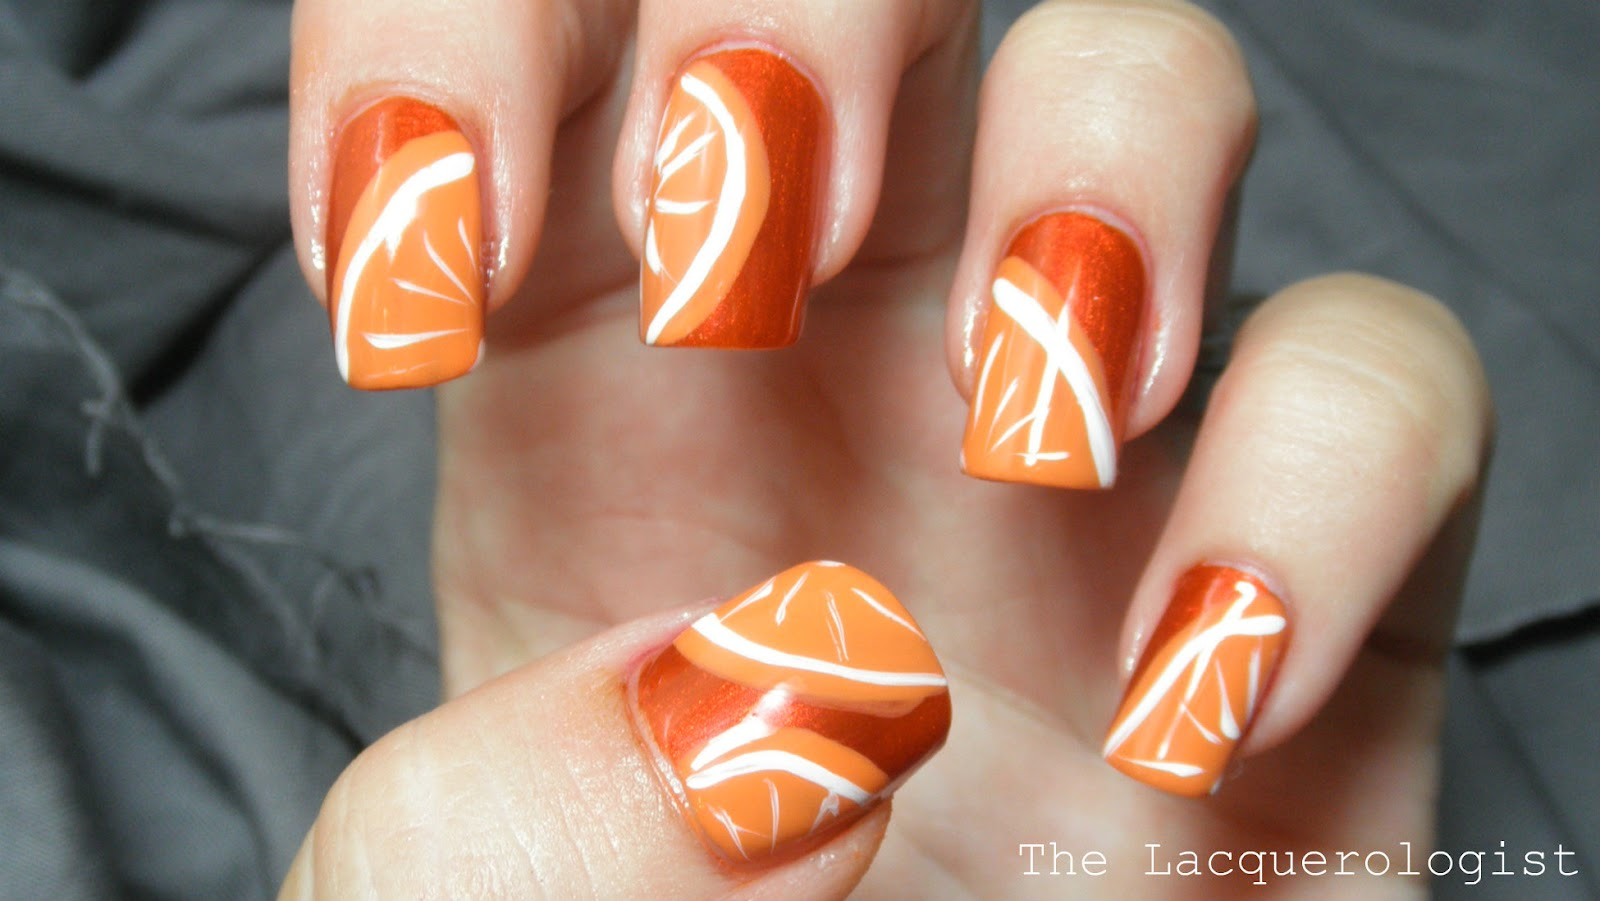 I think I will do a citrus mani soon with limes, lemons and grapefruits as  well! Do you like my literally orange orange nails? =)